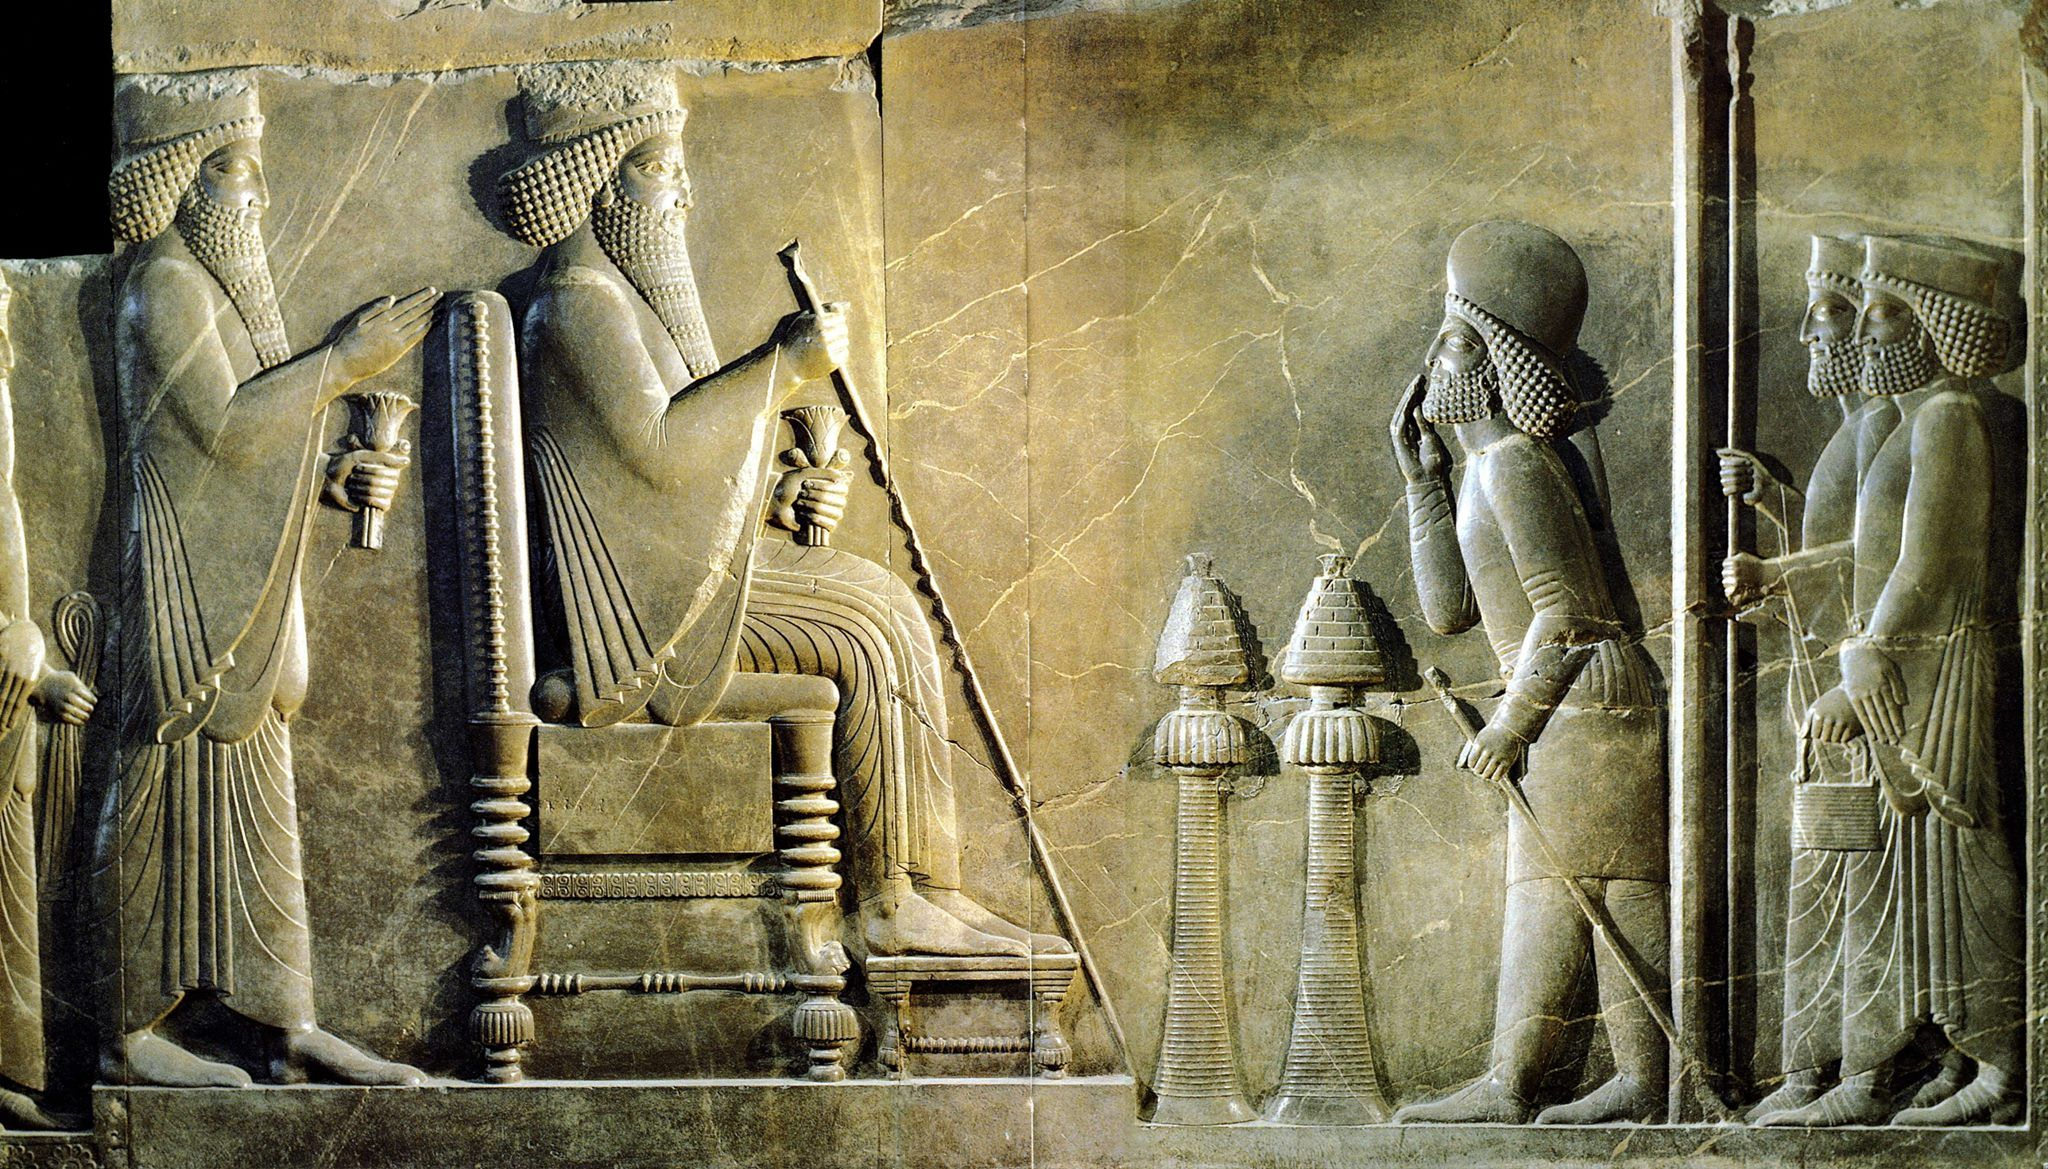 Treasury Relief Persepolis Xerxes Enthroned With Crown Prince Darius Behind Him Before The Throne Are Two Very E Ancient Persian Persian Empire Ancient Art